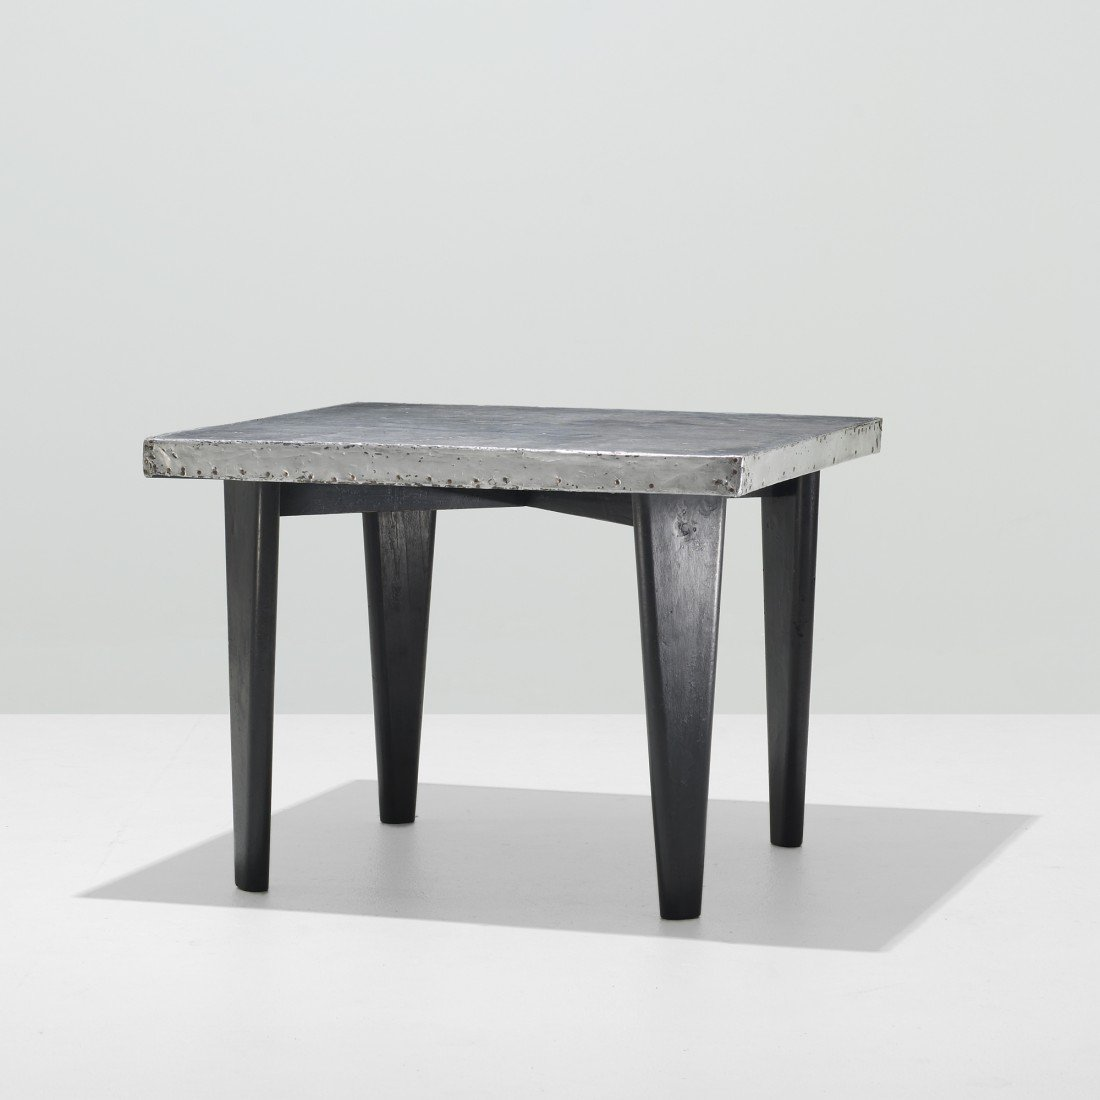 118: Pierre Jeanneret dining table